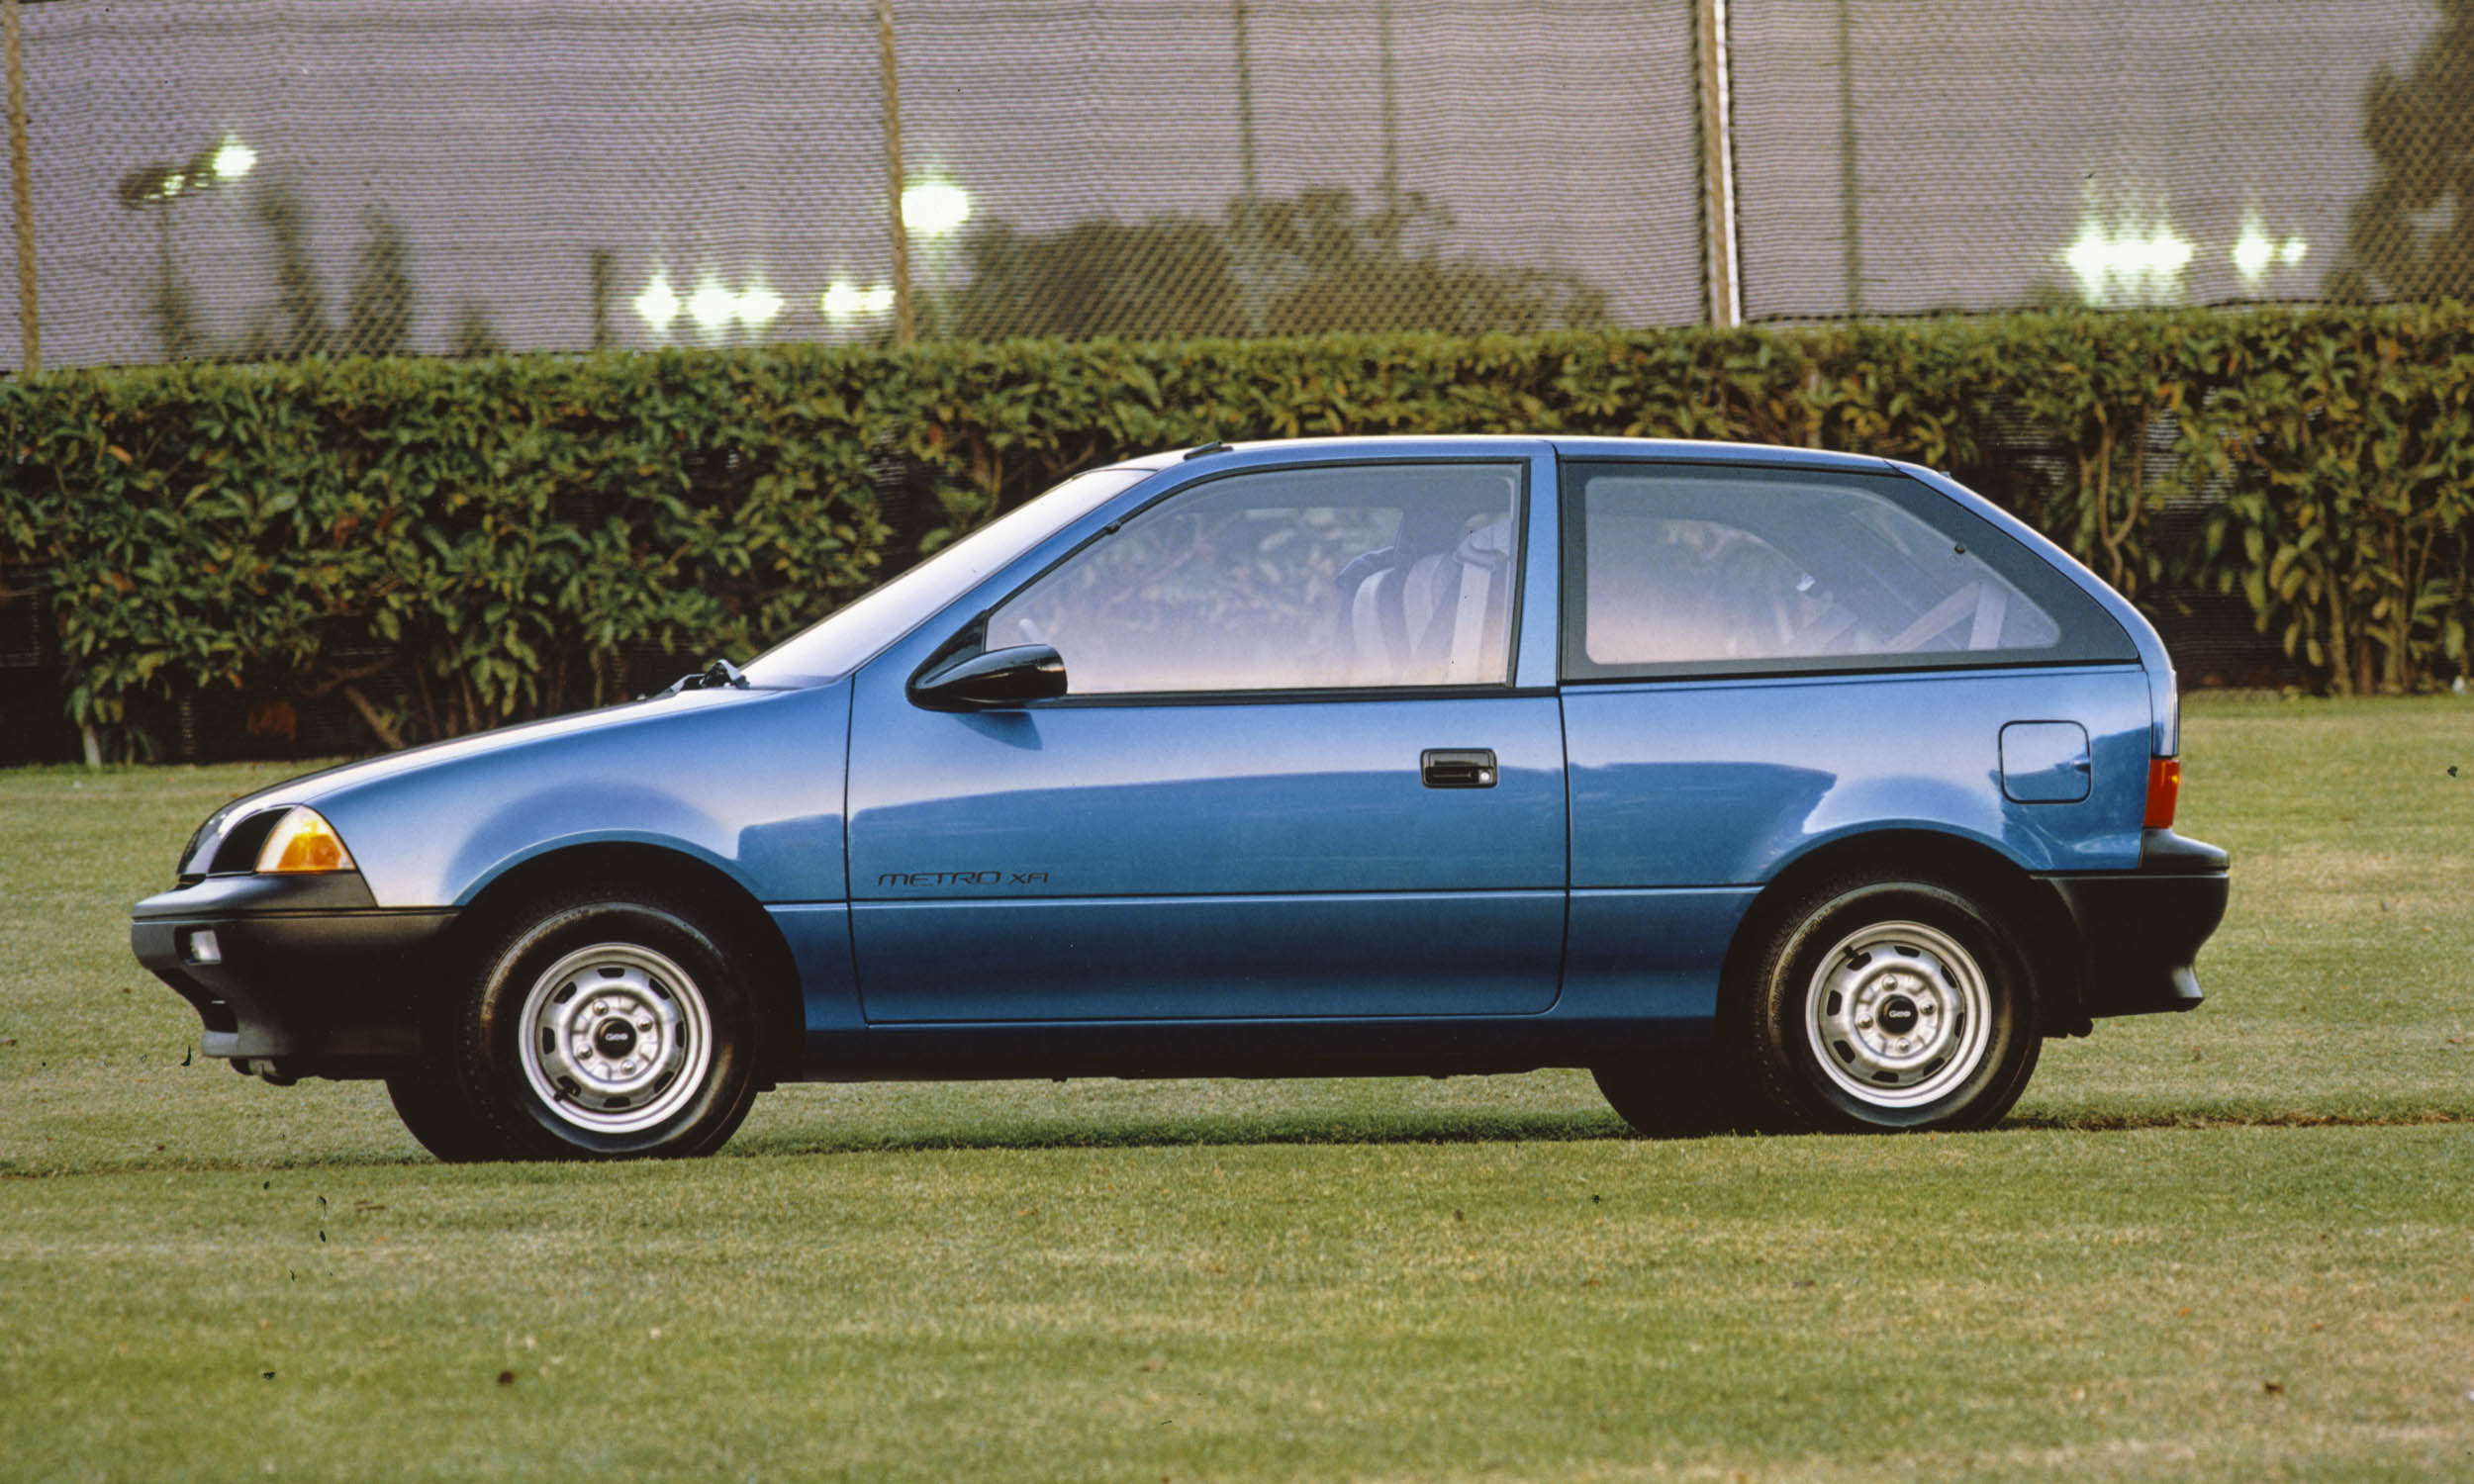 1994 Geo Metro Most Fuel Efficient Cars Of The Last 25 Years A Autonxt